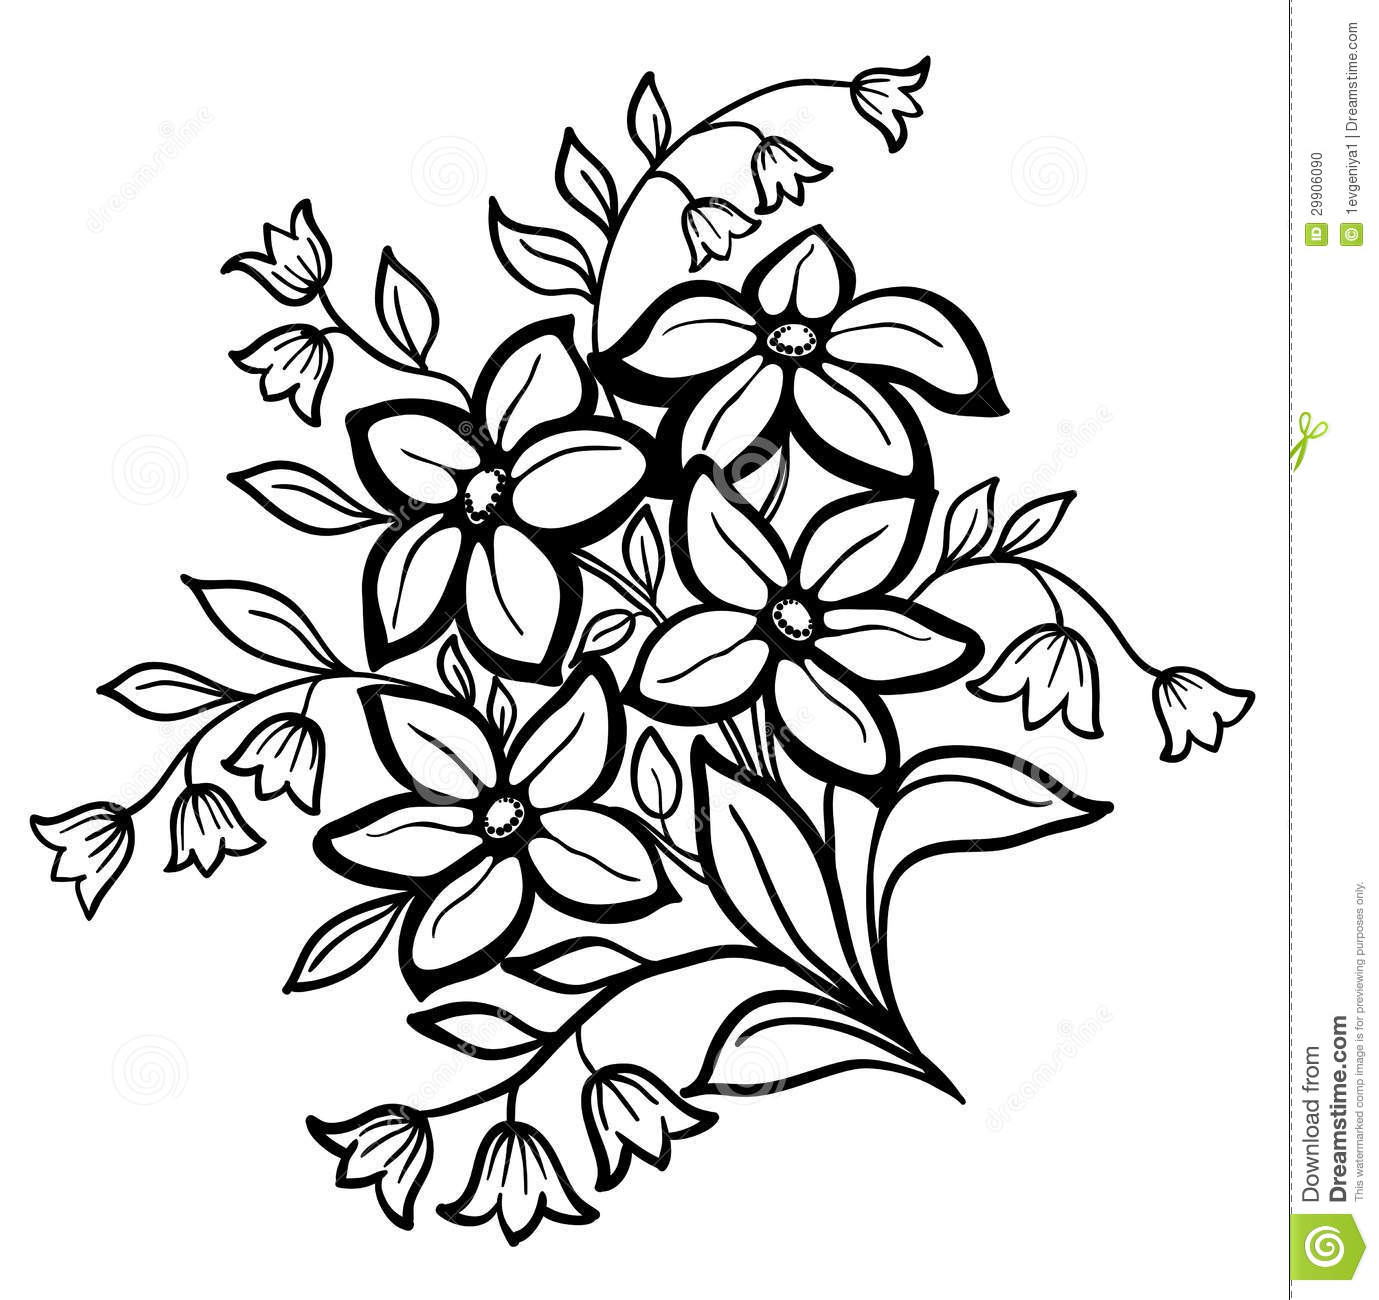 floral outlines